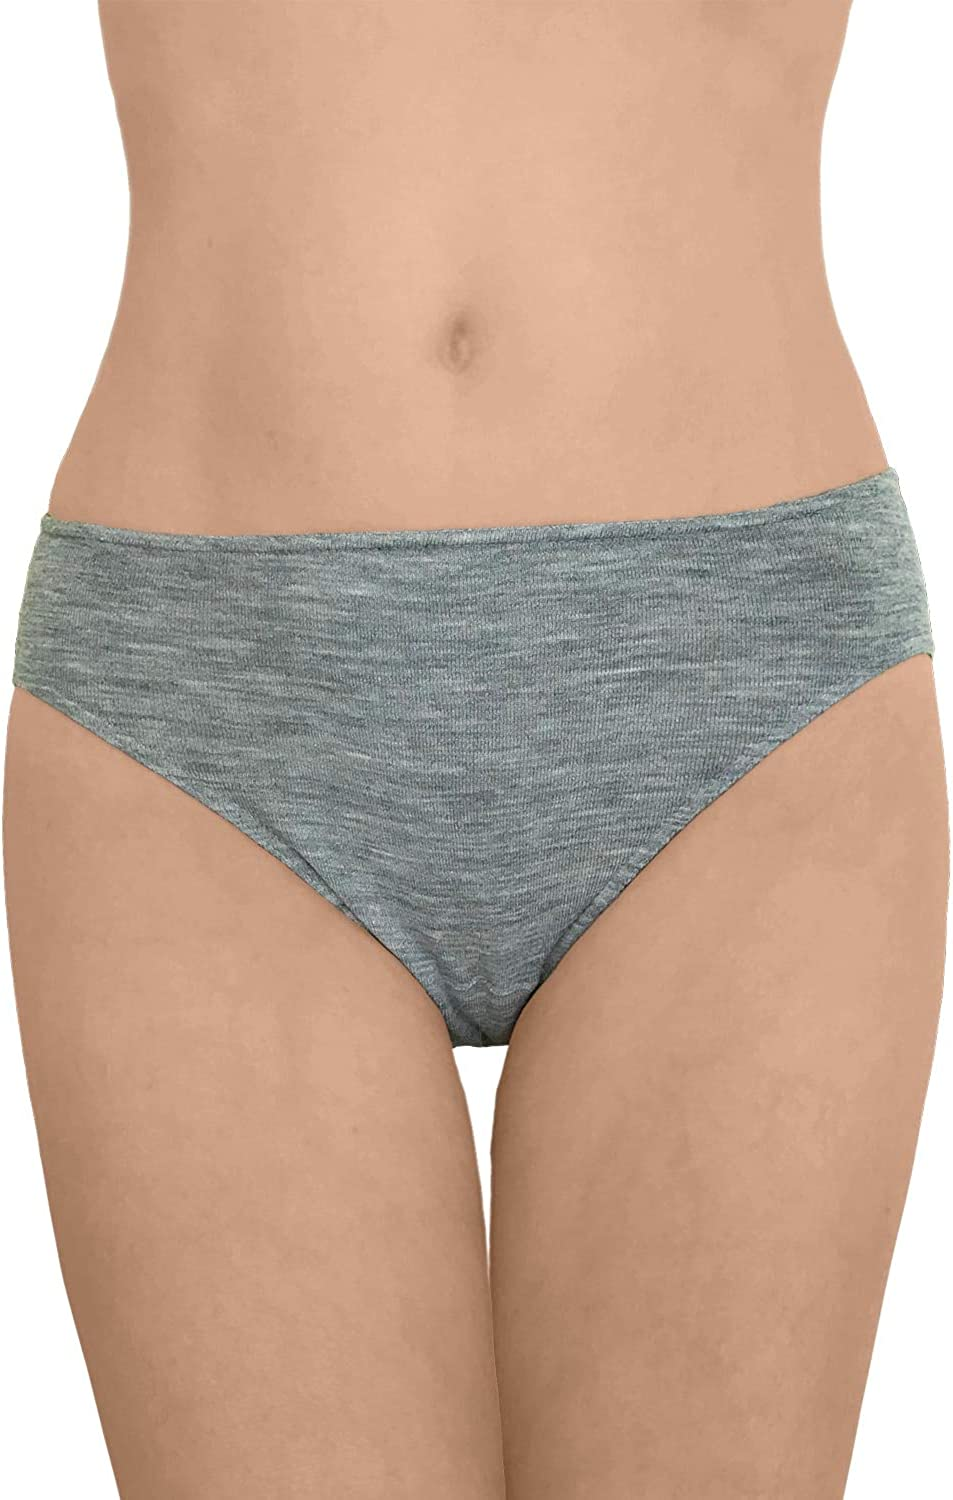 Women's Thermal Panties Briefs: Moisture Wicking Merino Wool Silk